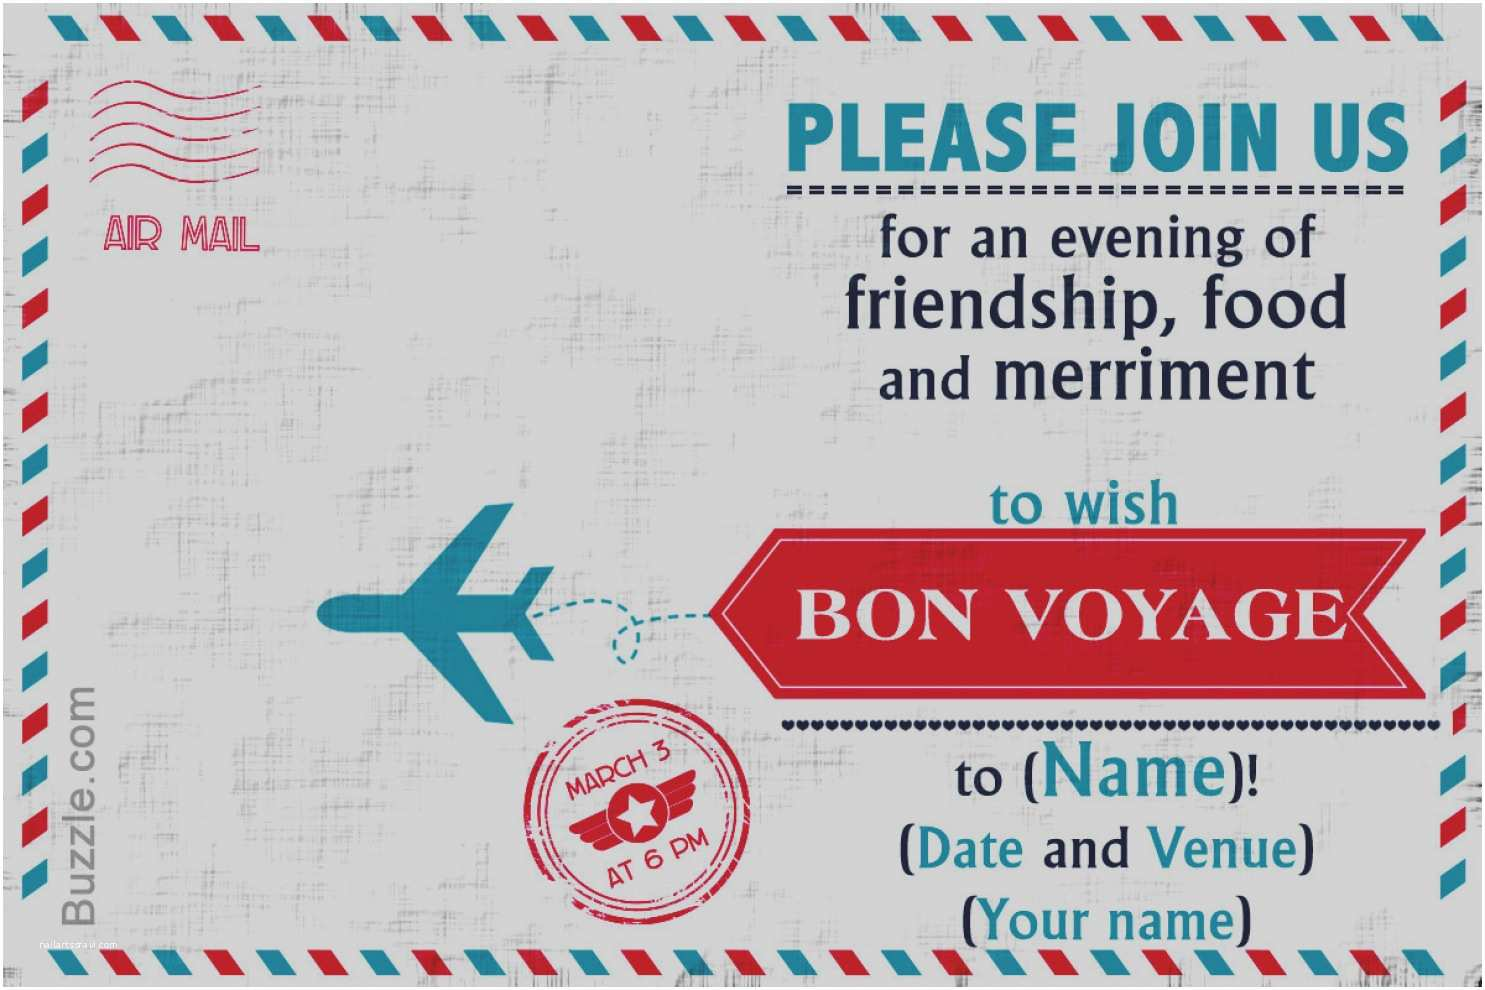 Farewell Party Invitation Wording for the Office Old Fashioned Invitation to A Farewell Party Position